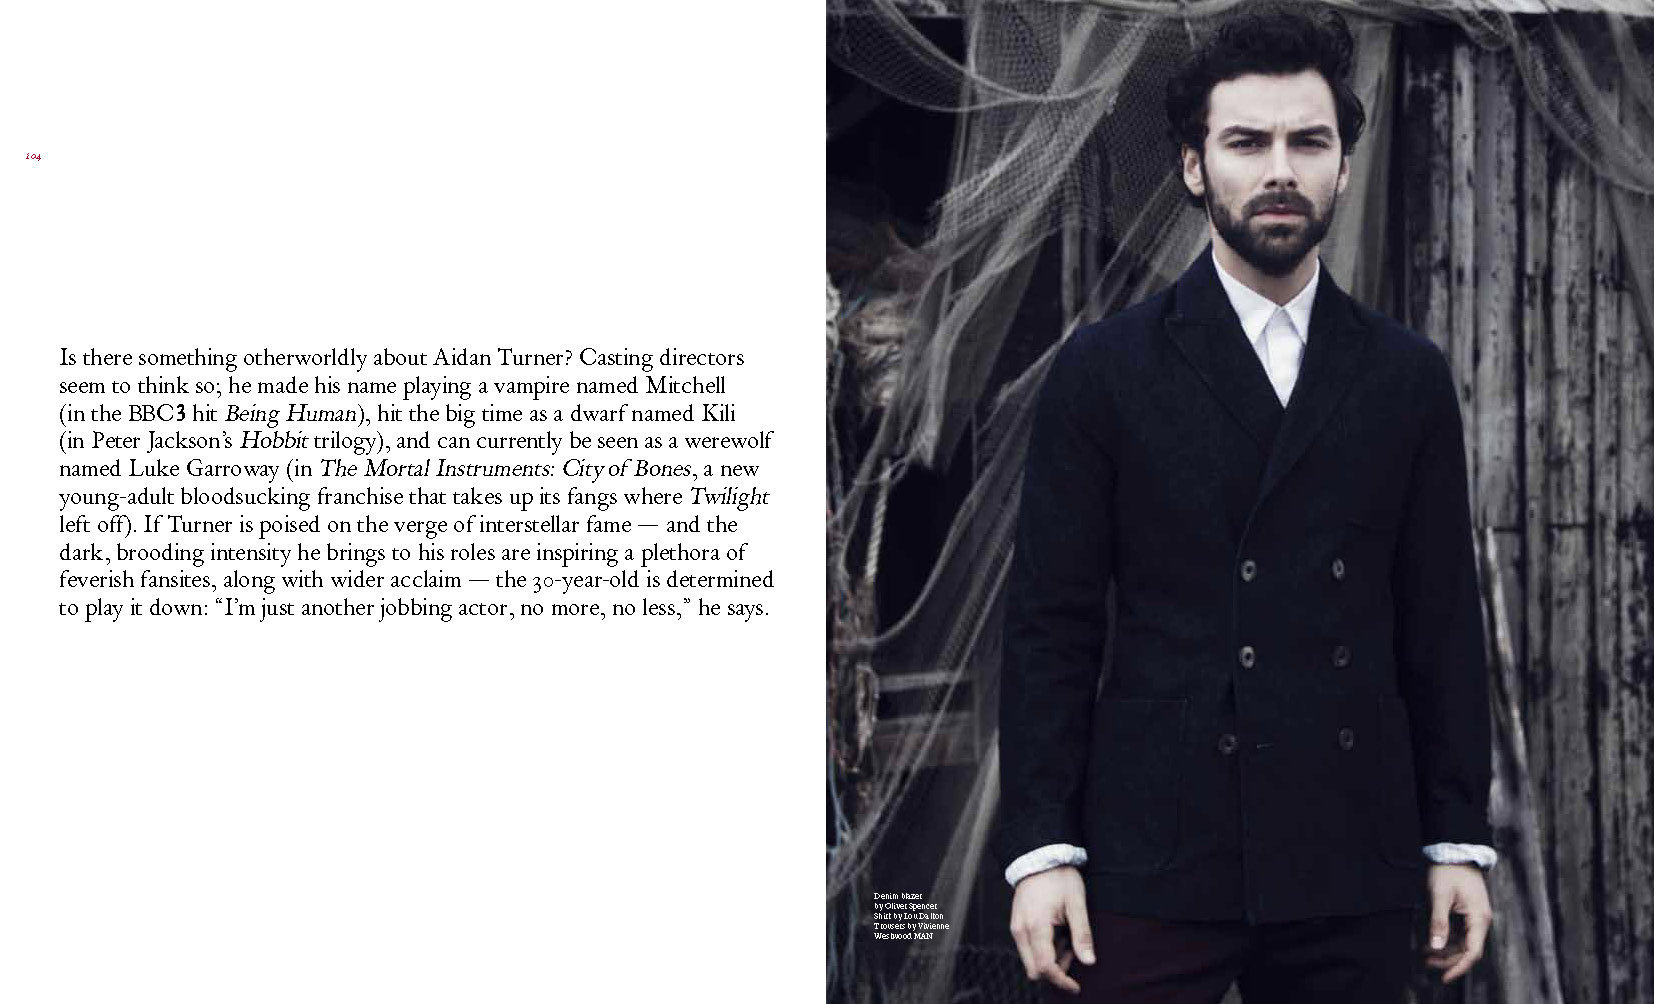 Aidan Turner feature_Page_2.jpg